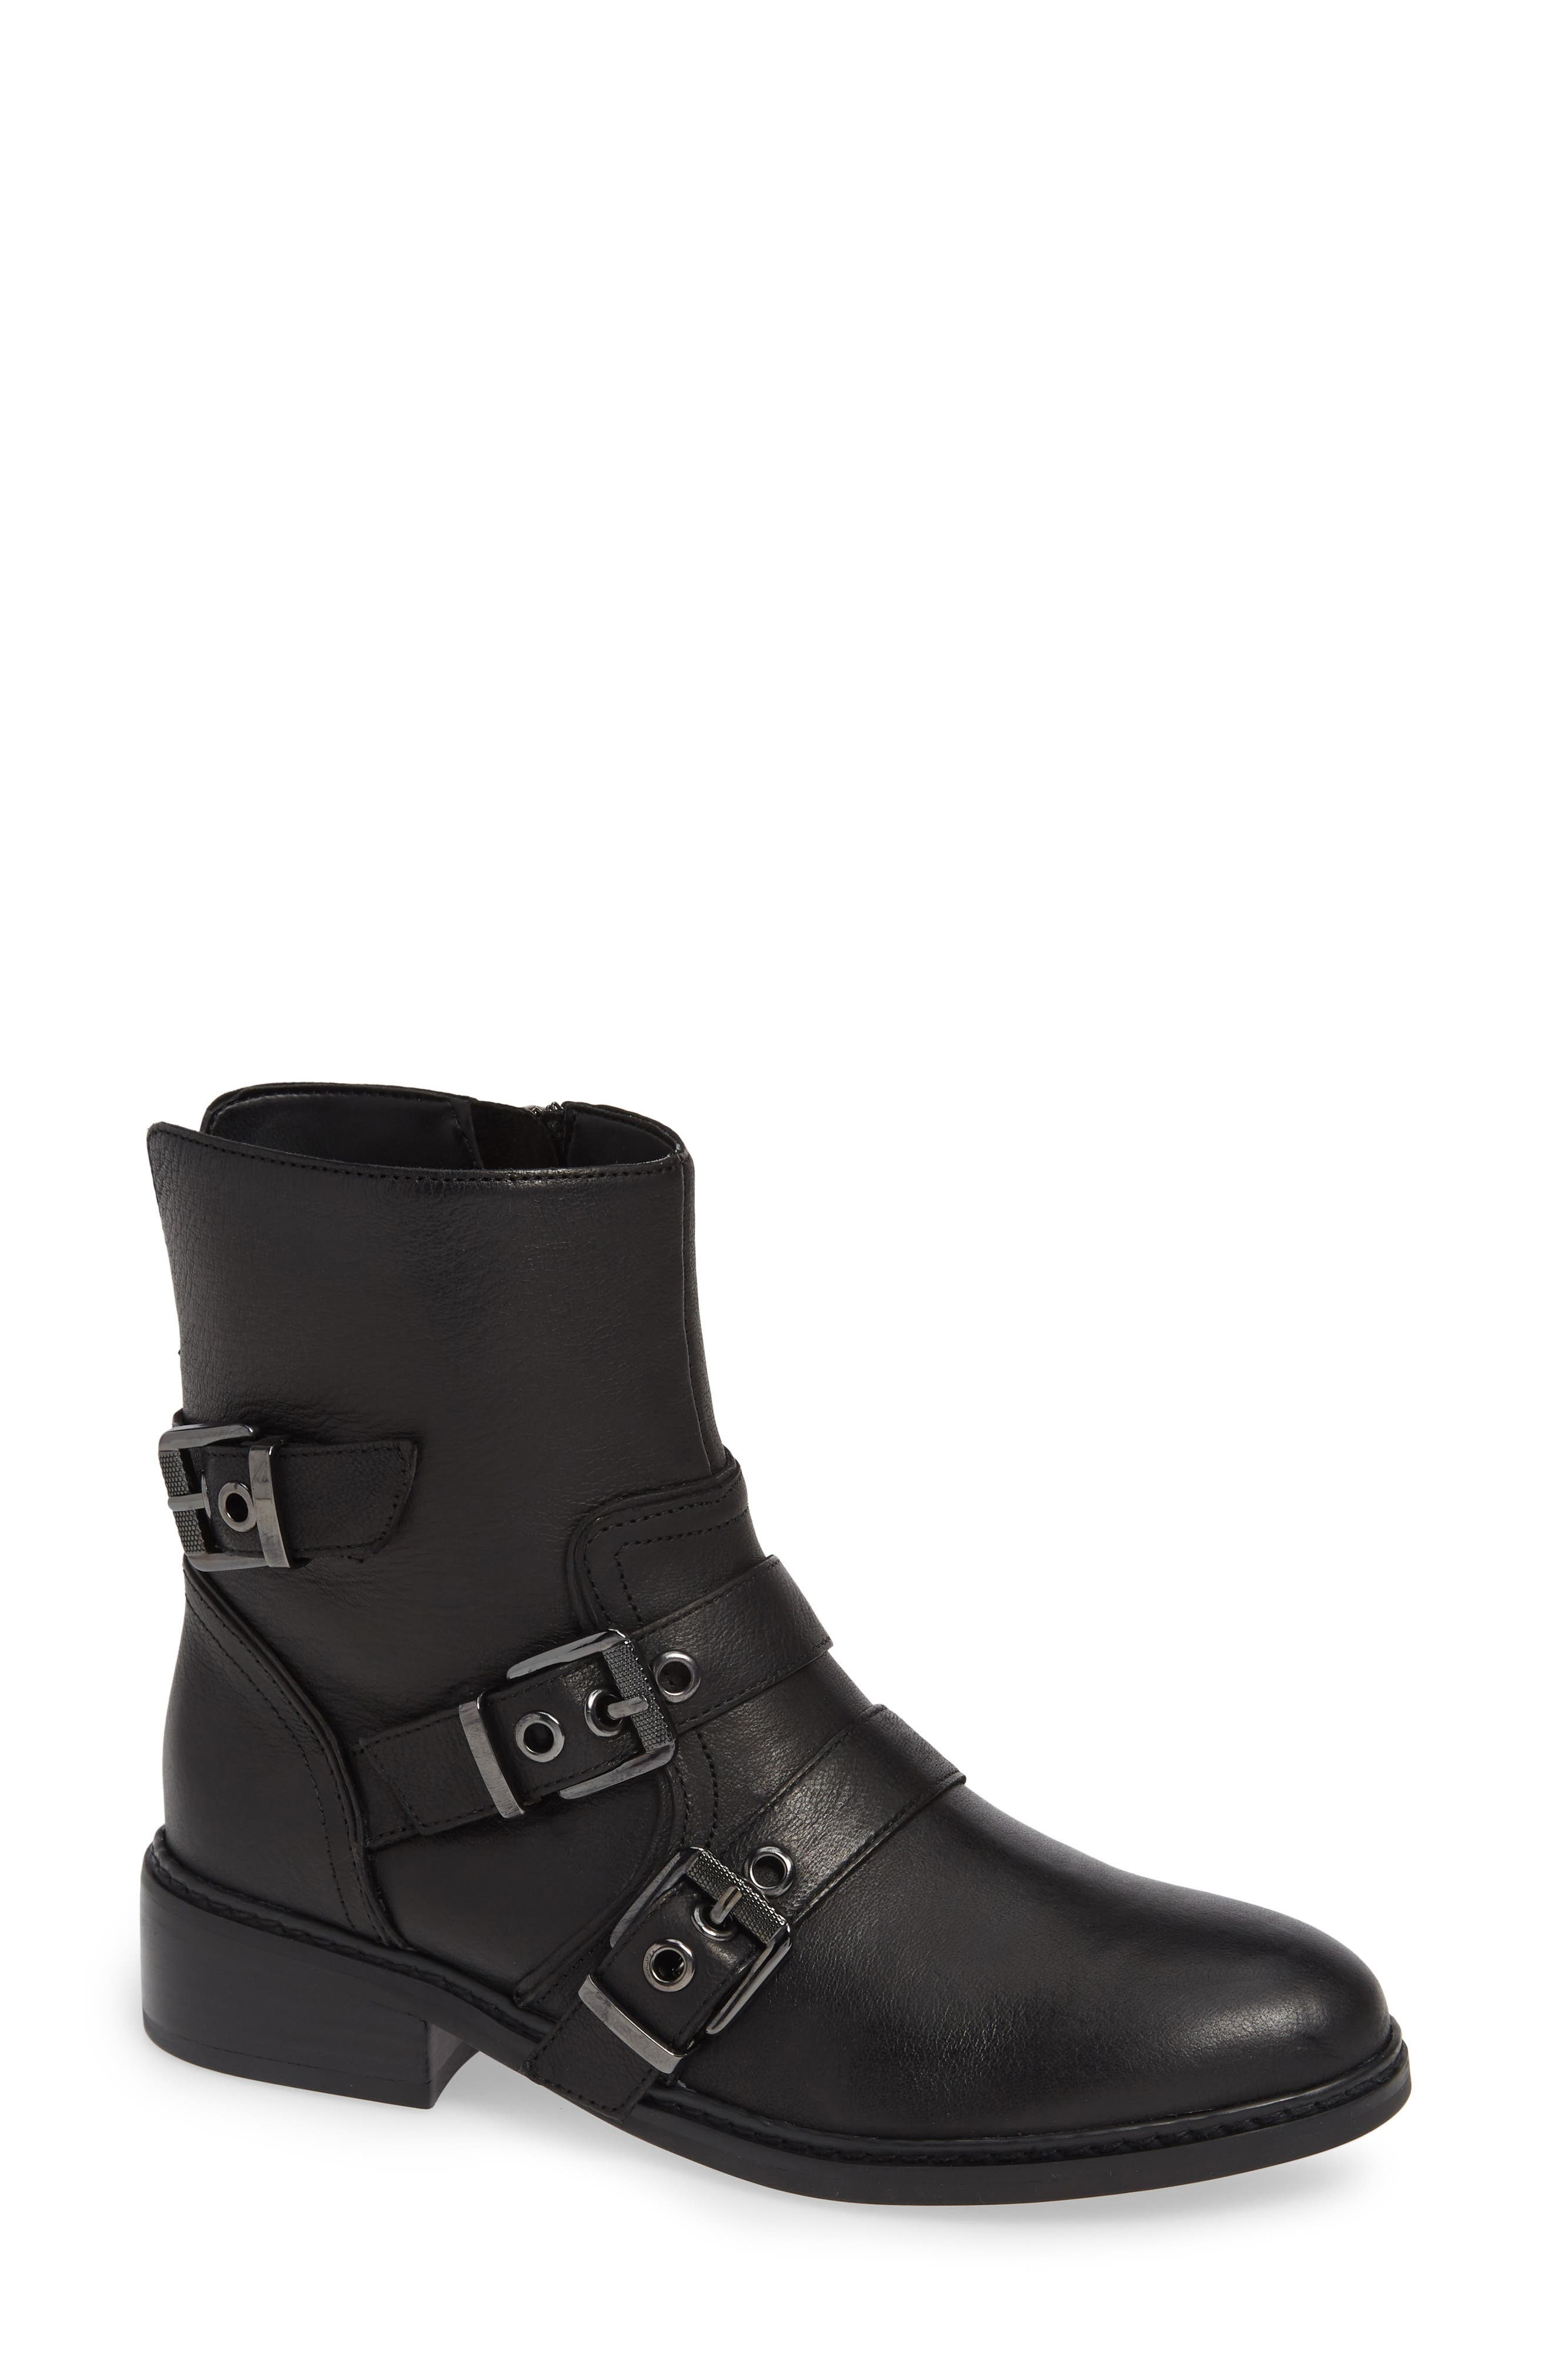 KENDALL AND KYLIE Nori Buckle Strap Bootie in Black Leather